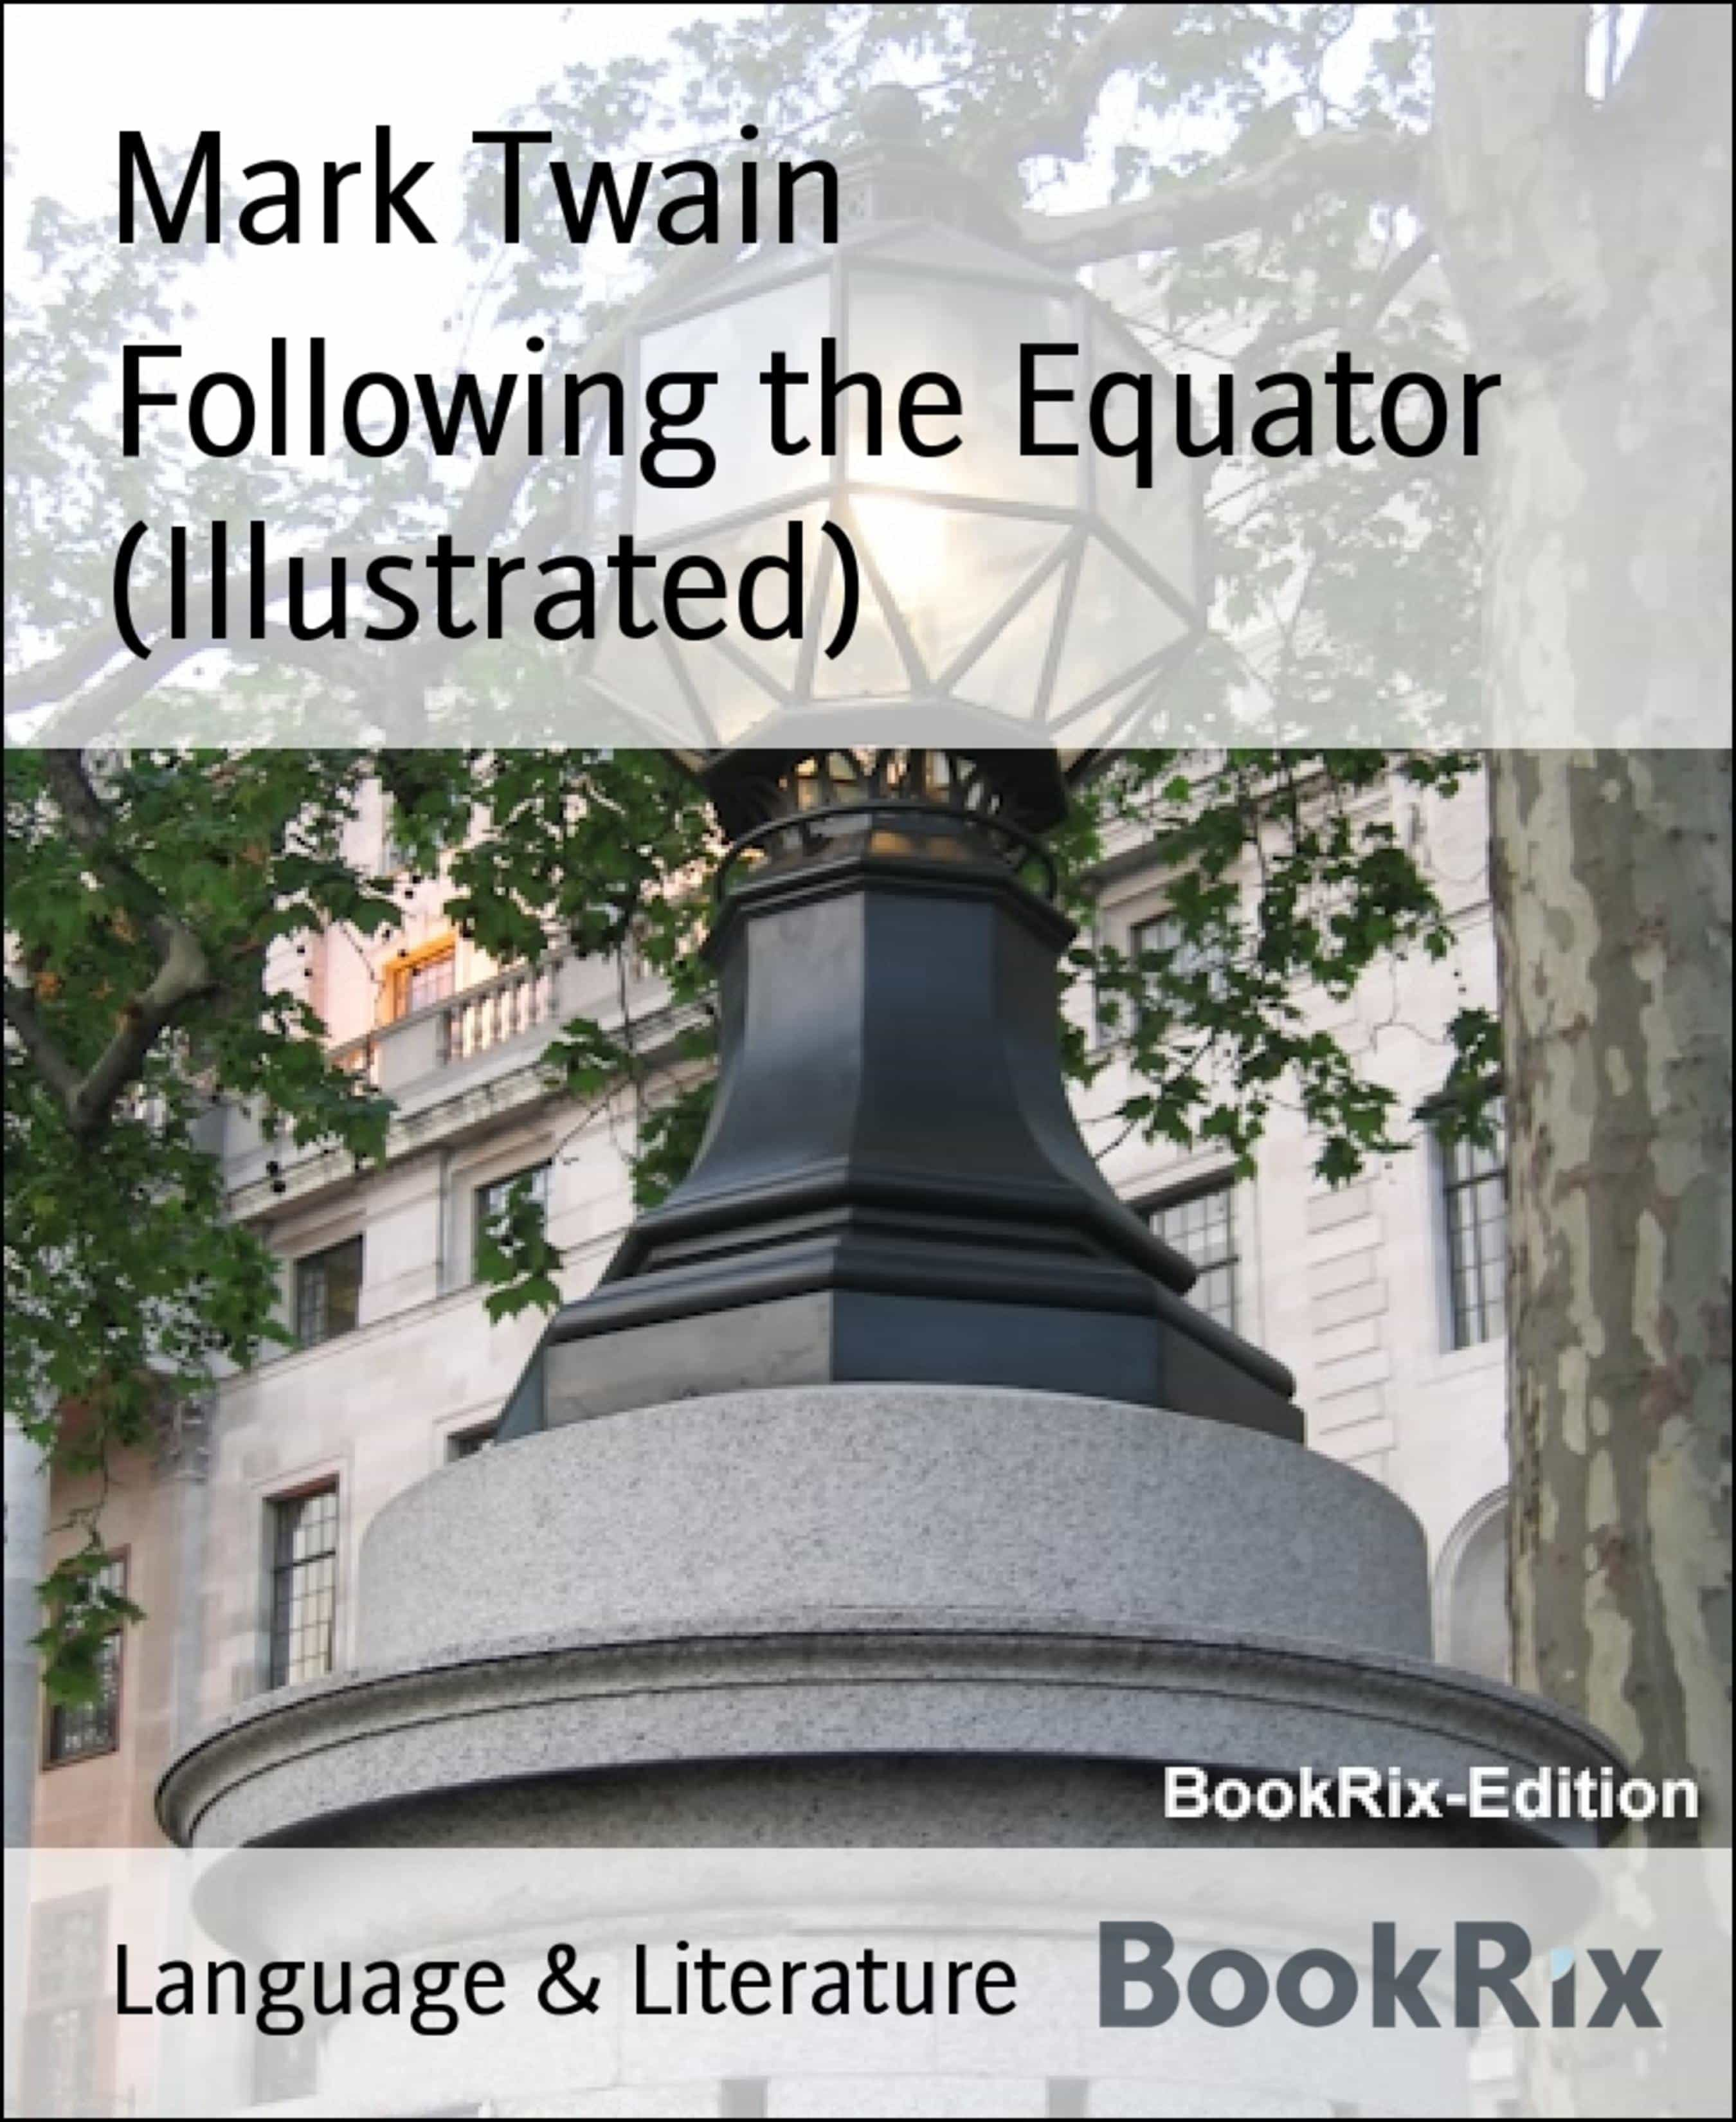 FOLLOWING THE EQUATOR (ILLUSTRATED)